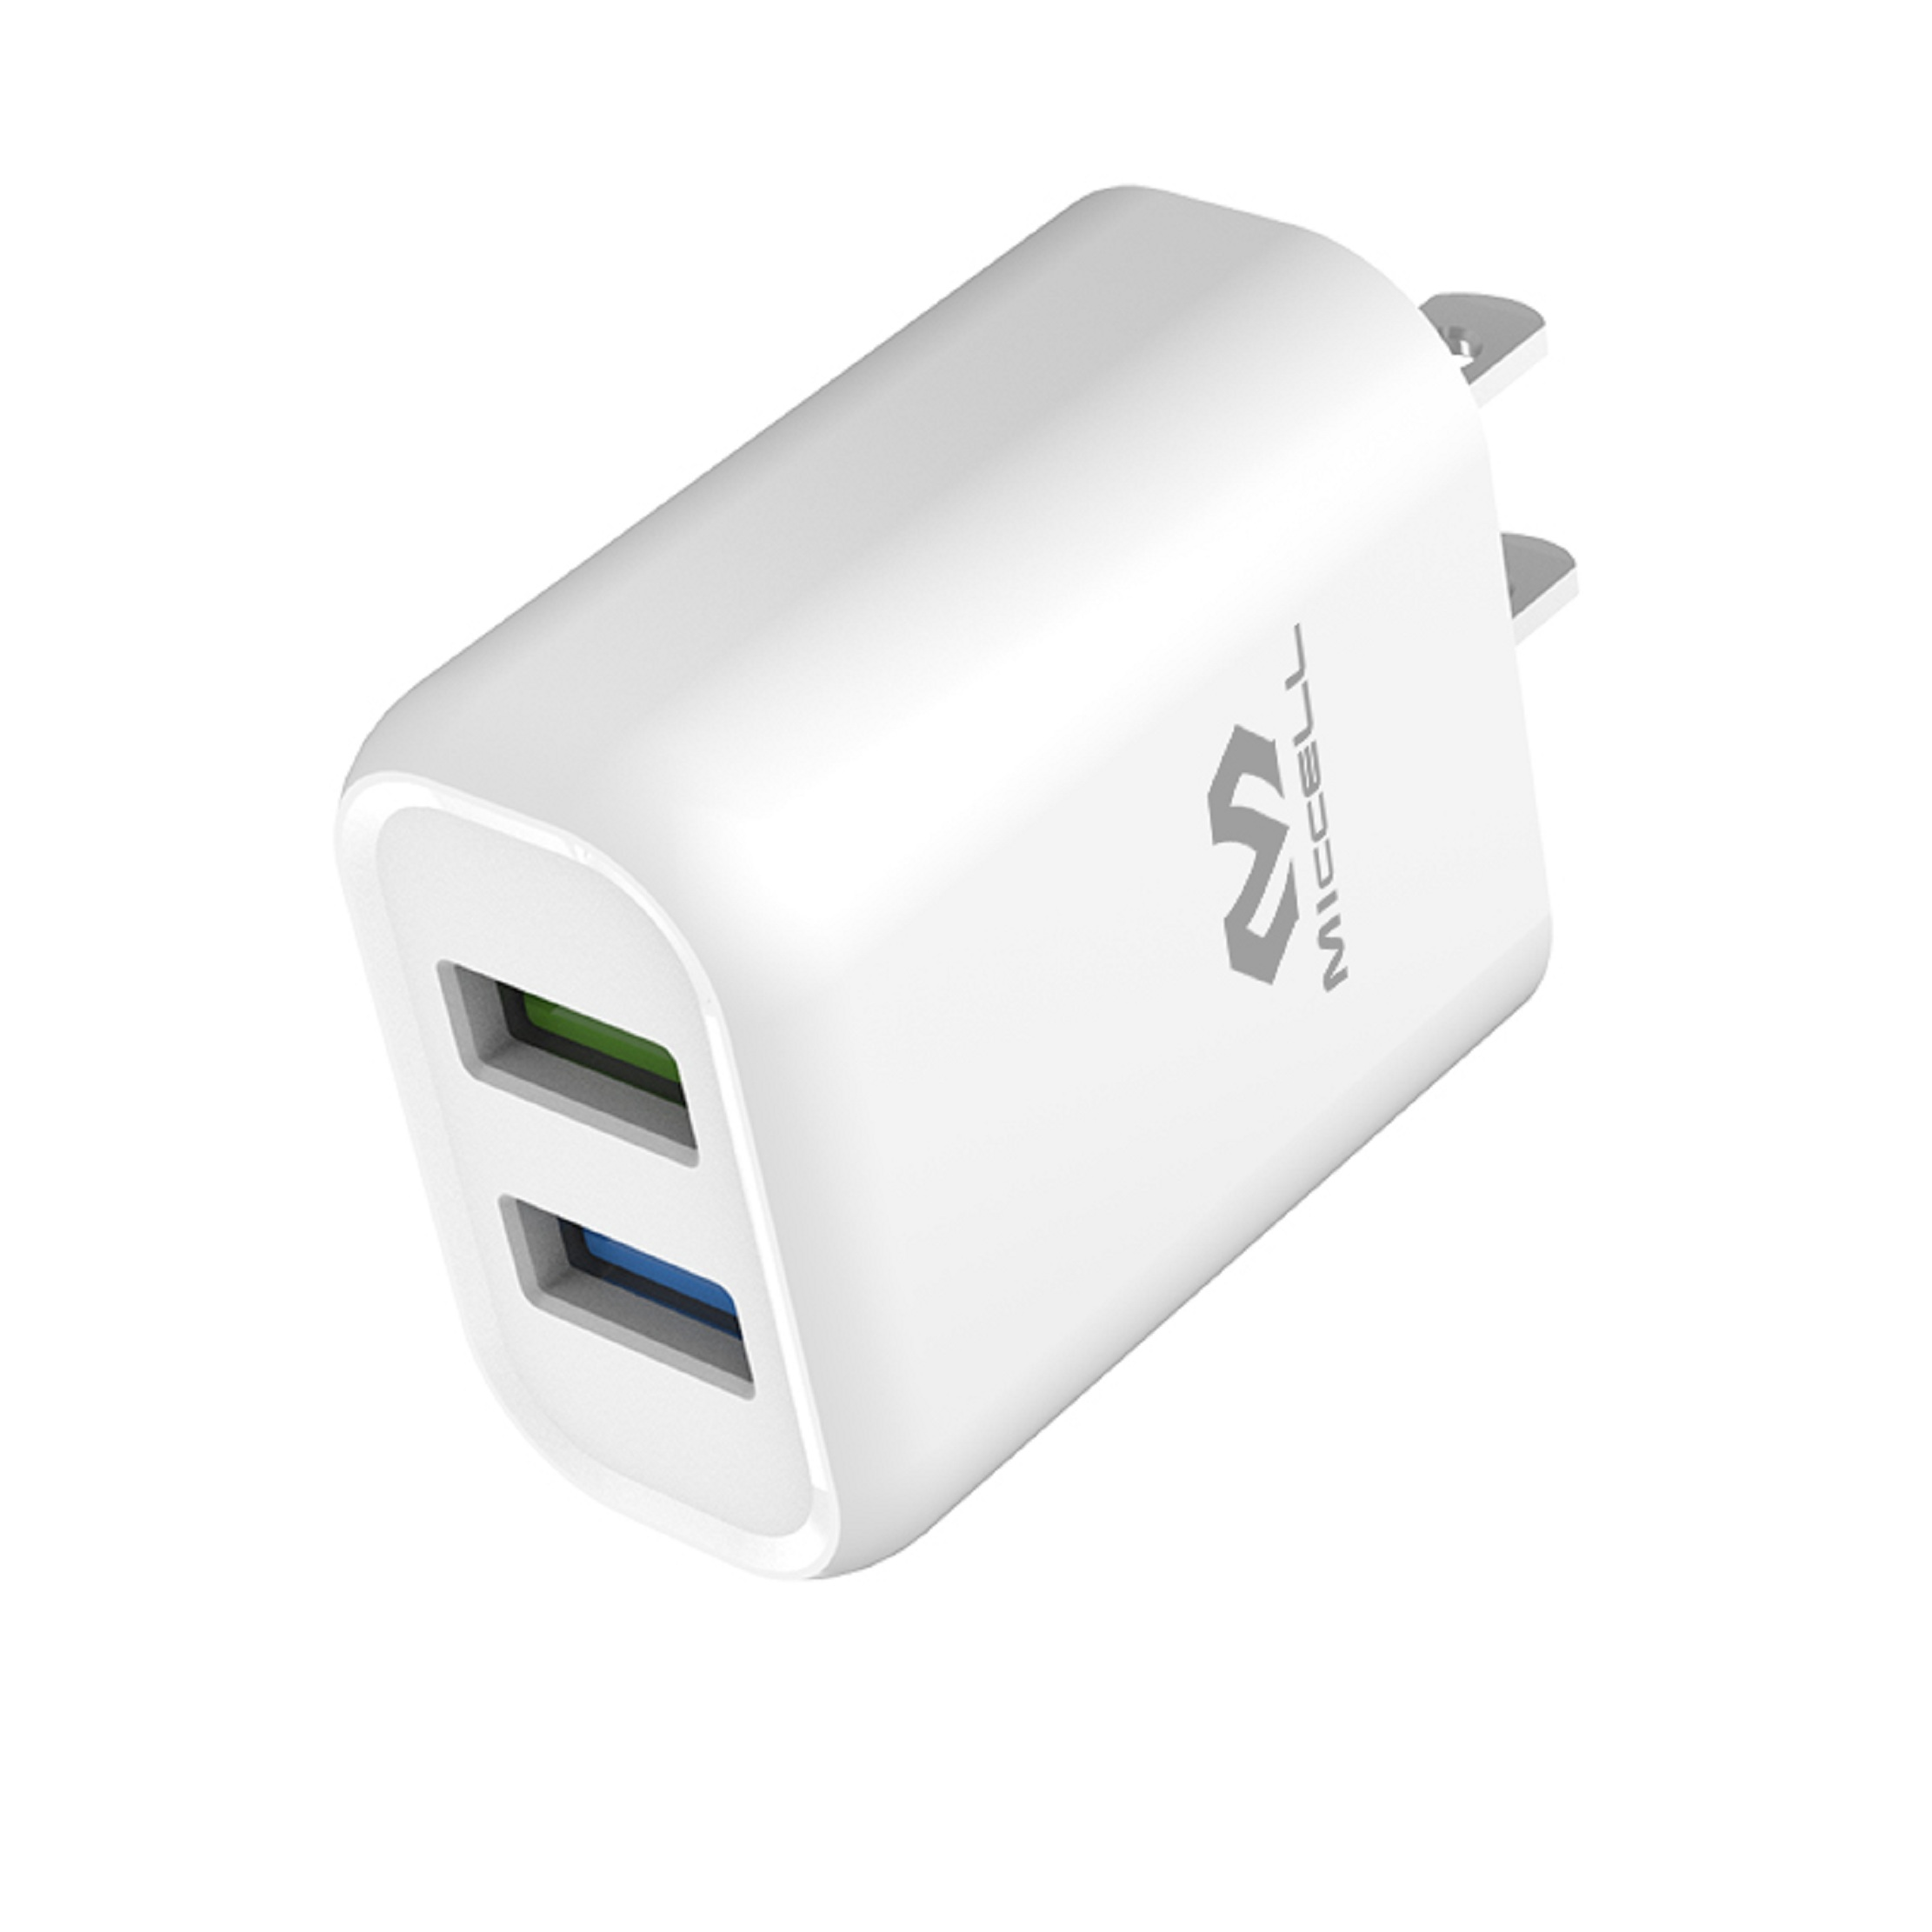 5V 2.4A USB dual charger plug US for iphone T05U